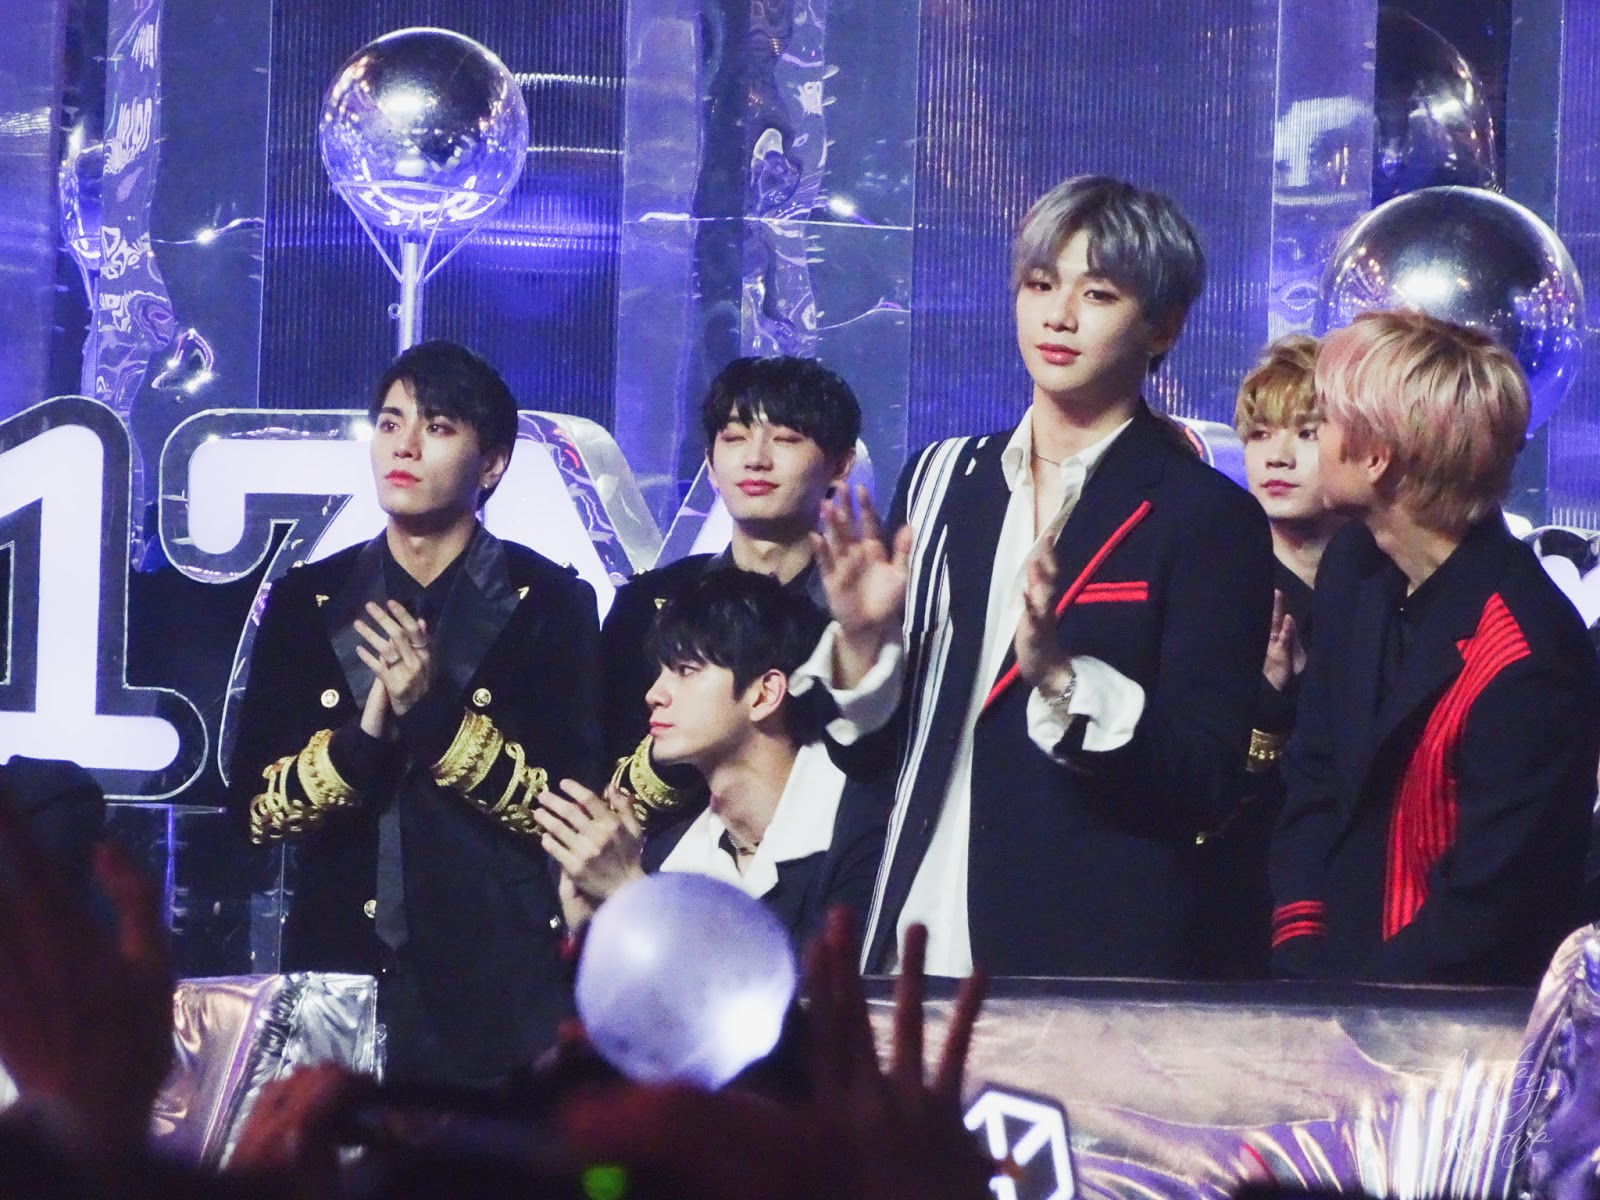 Famous Korean k-pop boy band Wannaone receiving award on stage at Melon Music Awards (MMA) 2017 in Seoul, South Korea